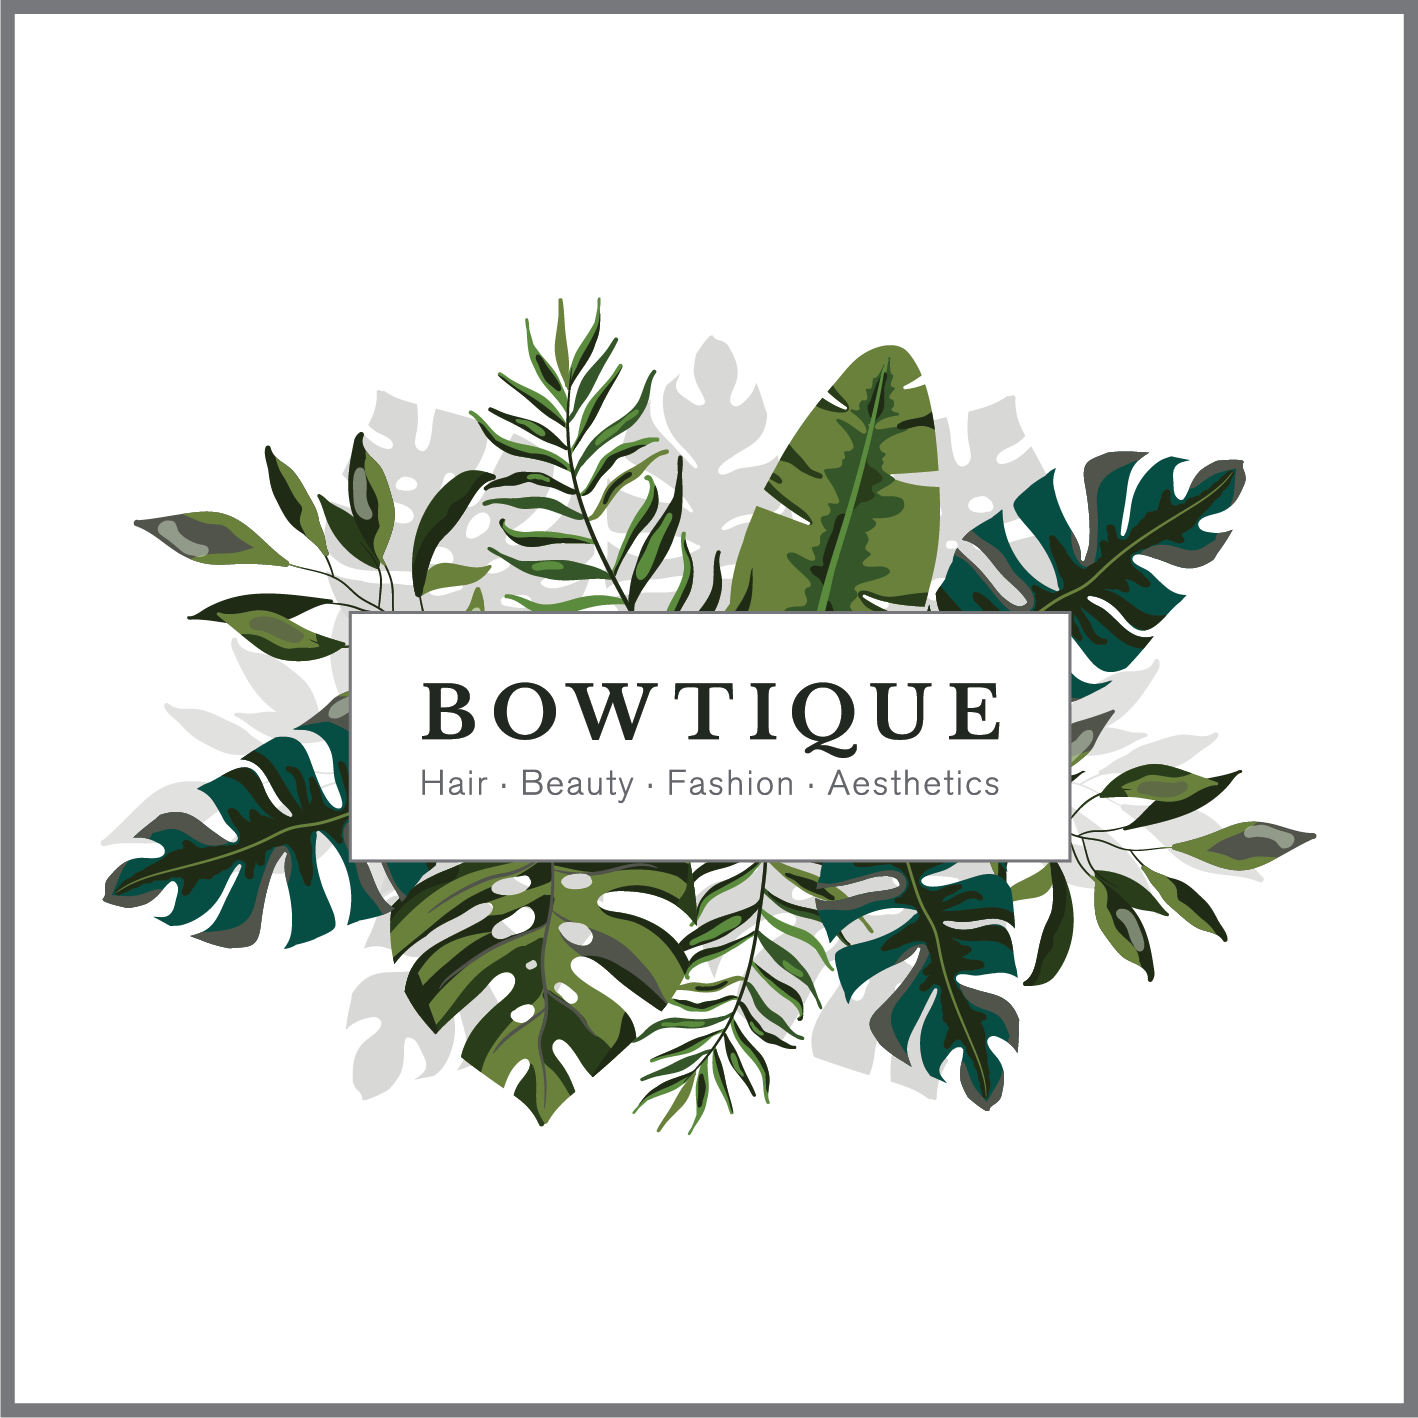 Bowtique Hair Beauty and Fashion